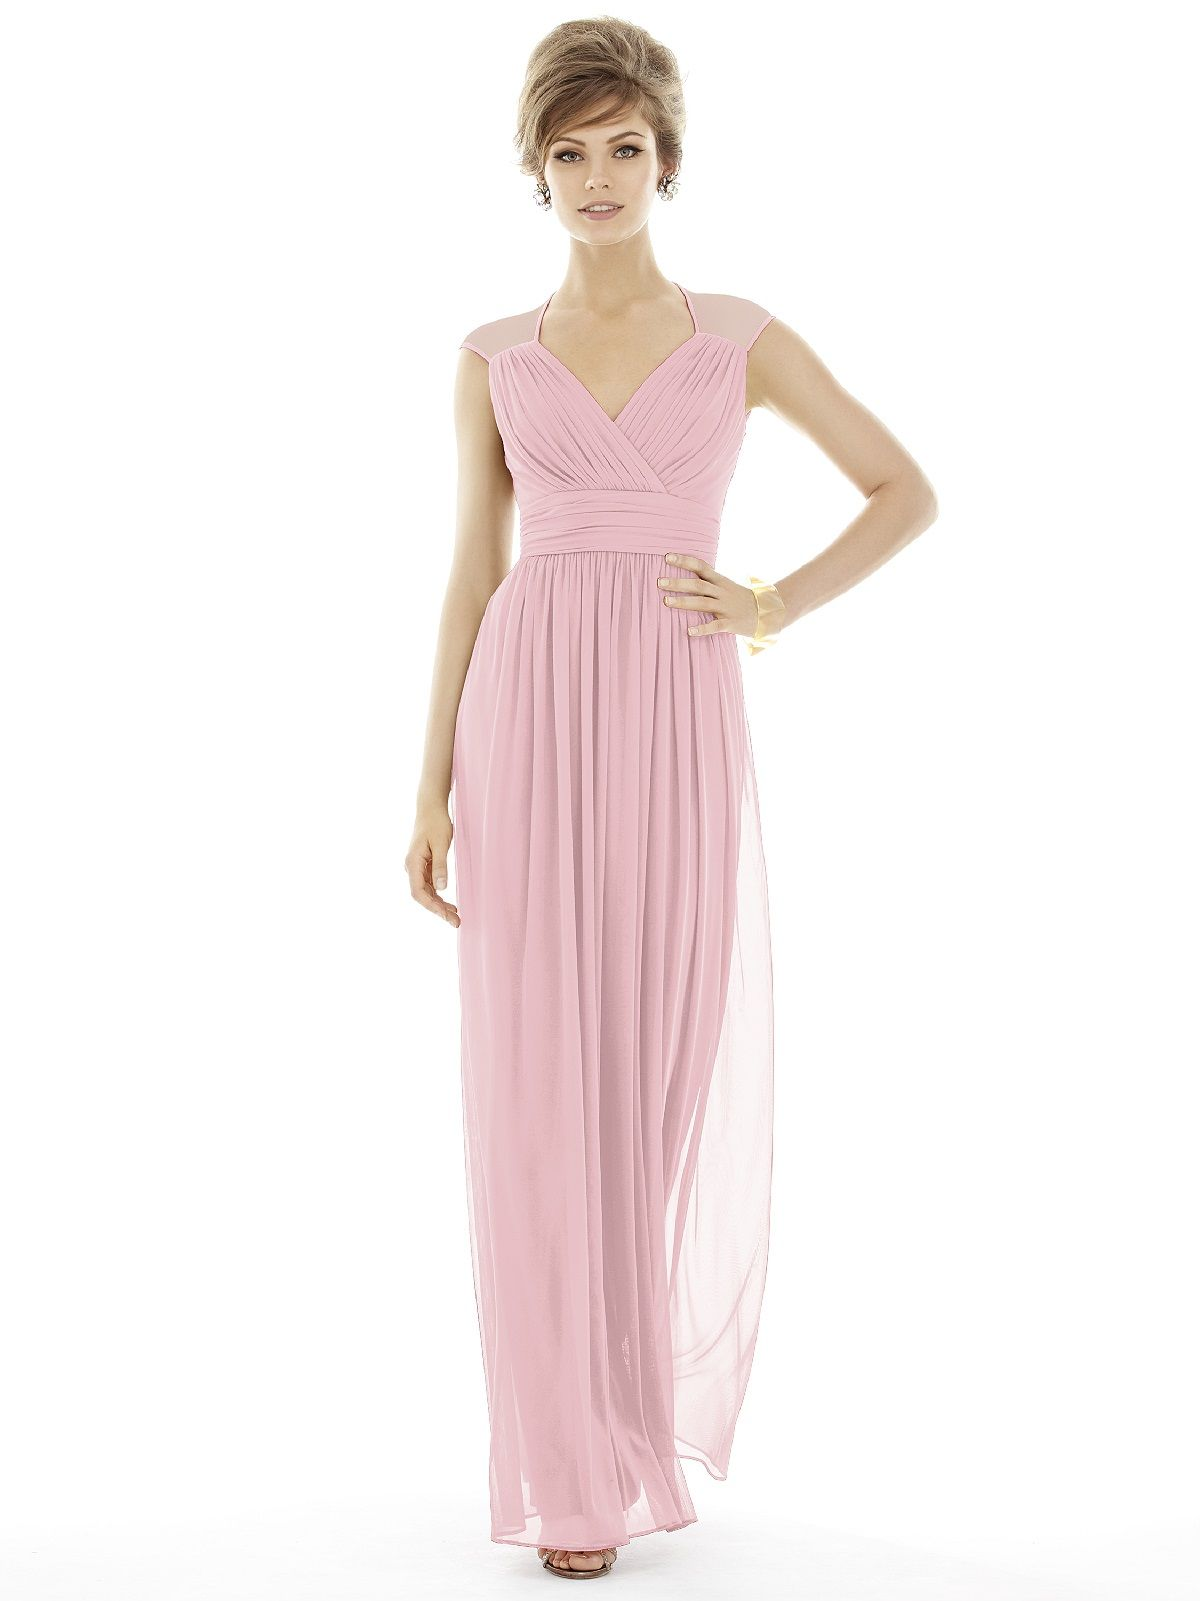 Alfred sung style d693 alfred sung alfred sung bridesmaid dresses shop alfred sung final sale sample sale in chiffon knit at weddington way find the perfect made to order bridesmaid dresses for your bridal party in your ombrellifo Choice Image